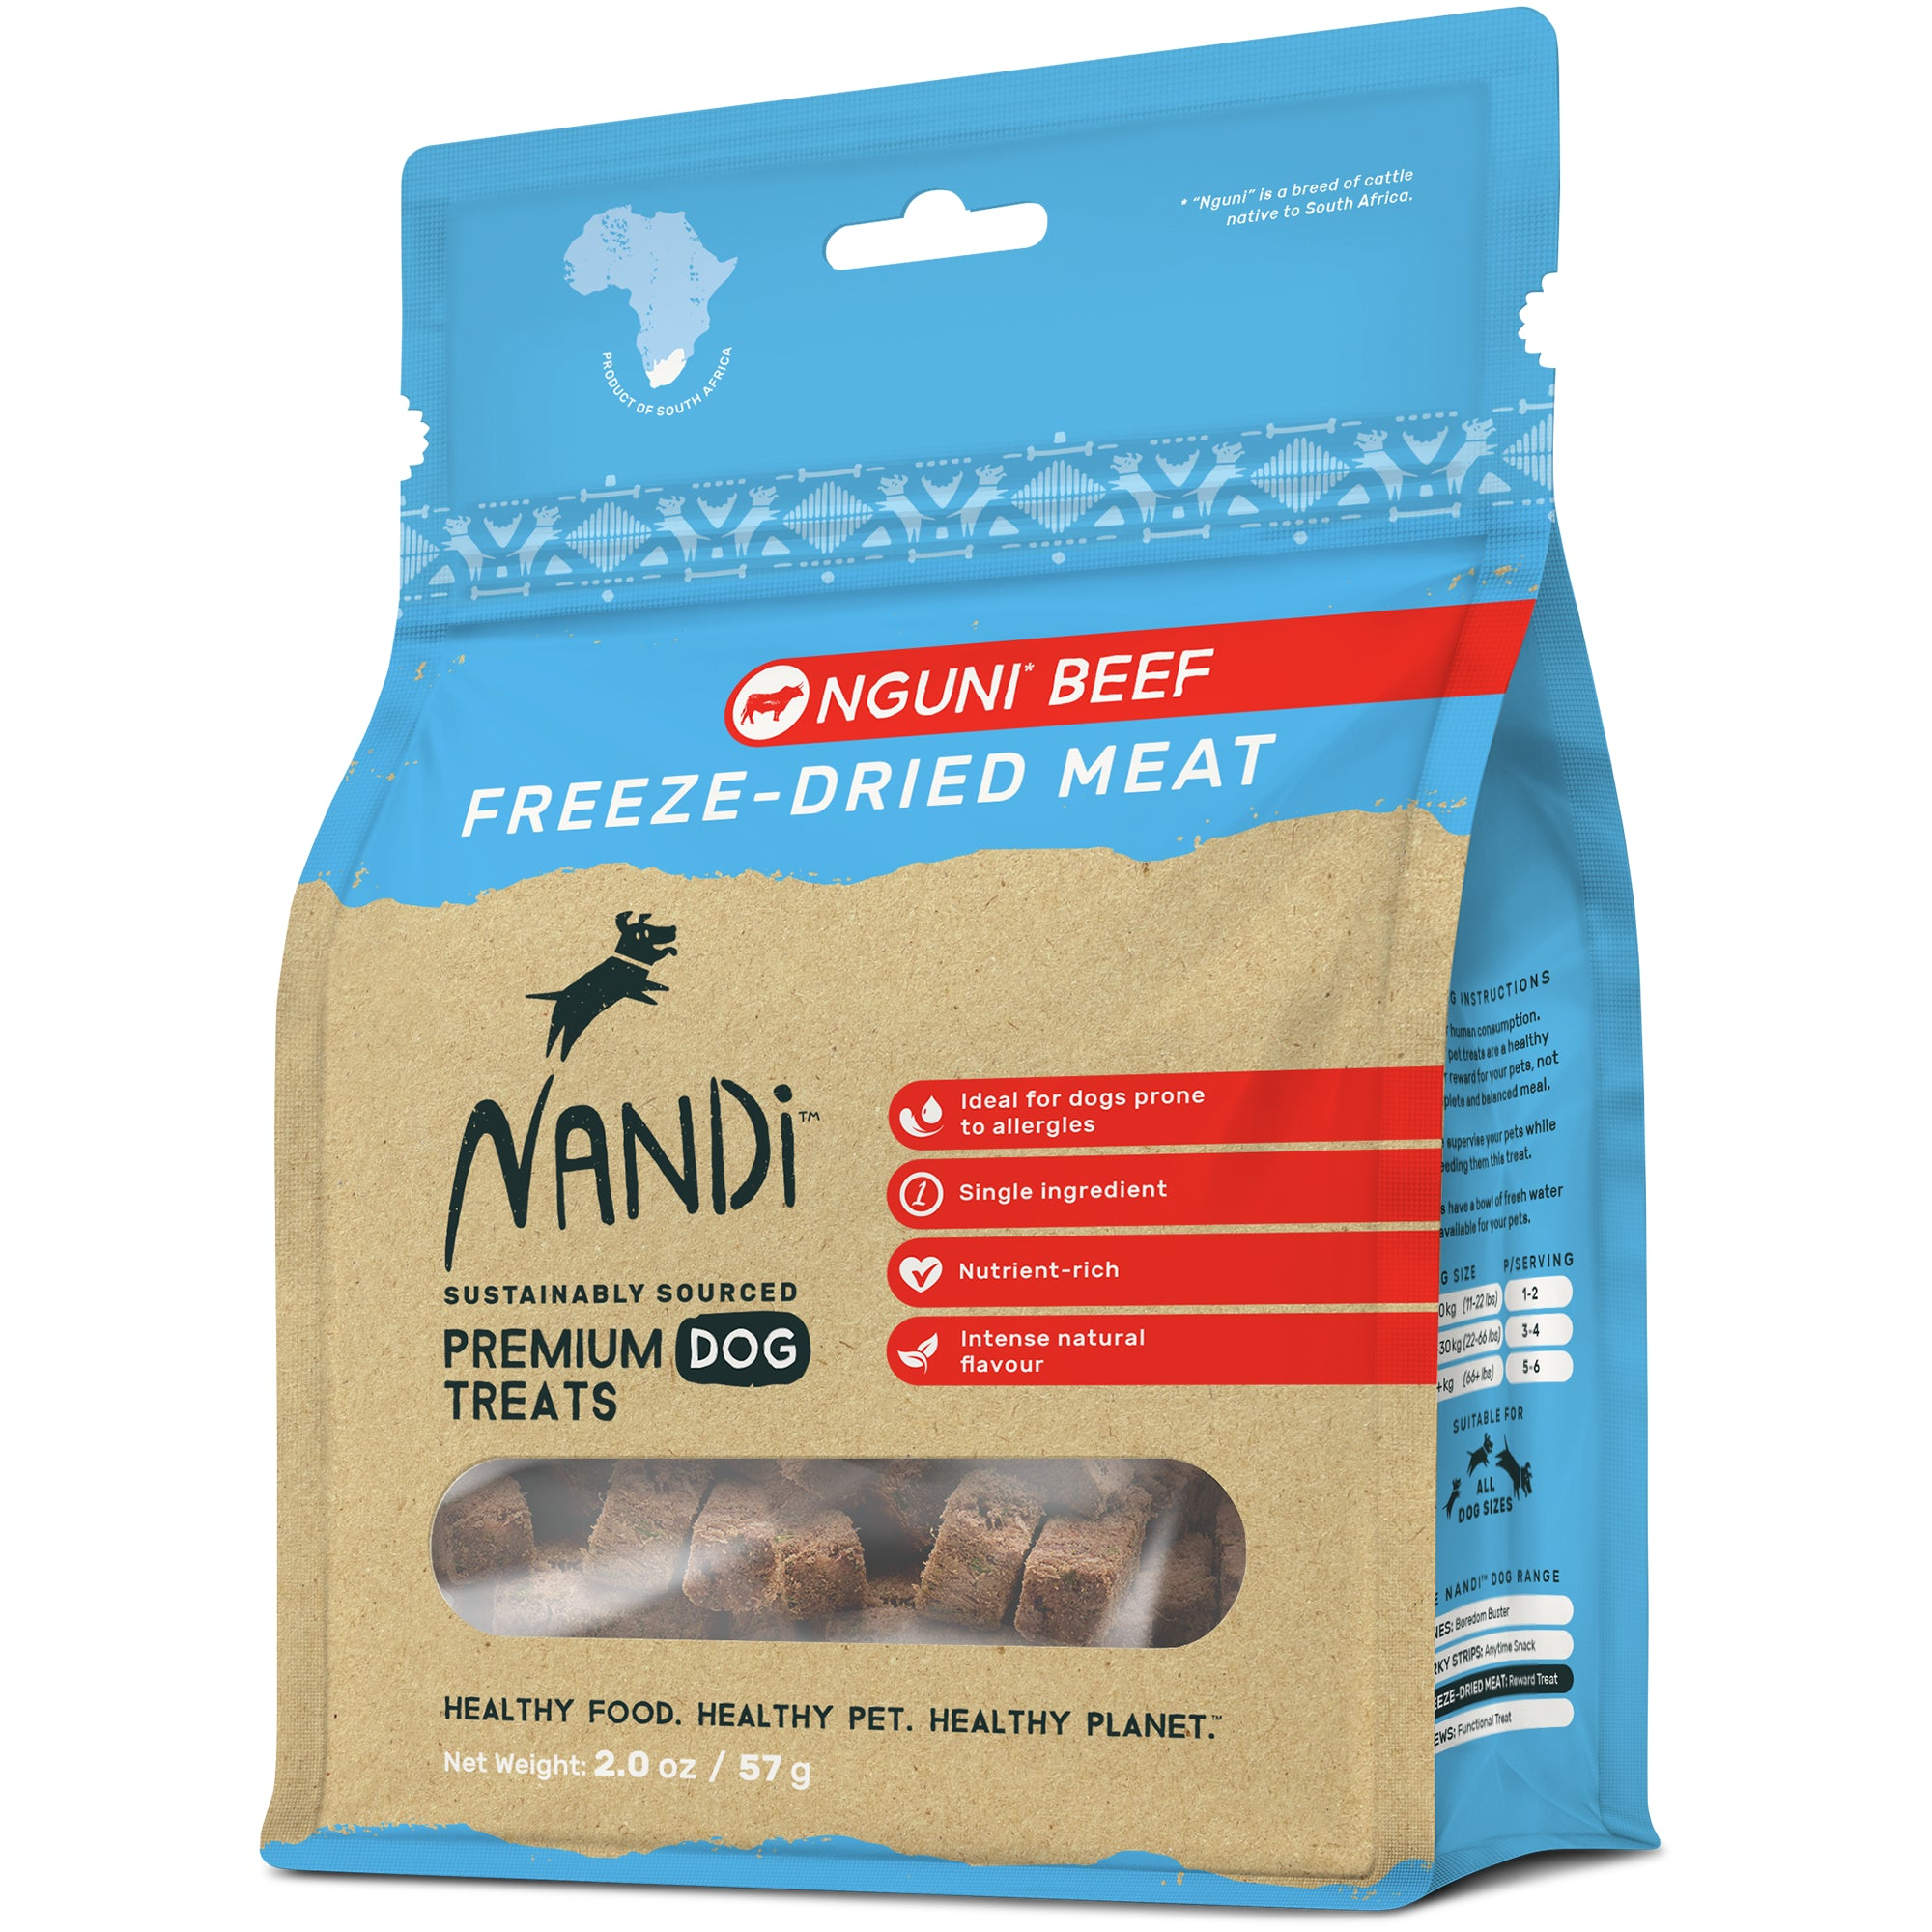 Nandi Freeze Dried Meat Pet Treats -Nguni Beef  57g)